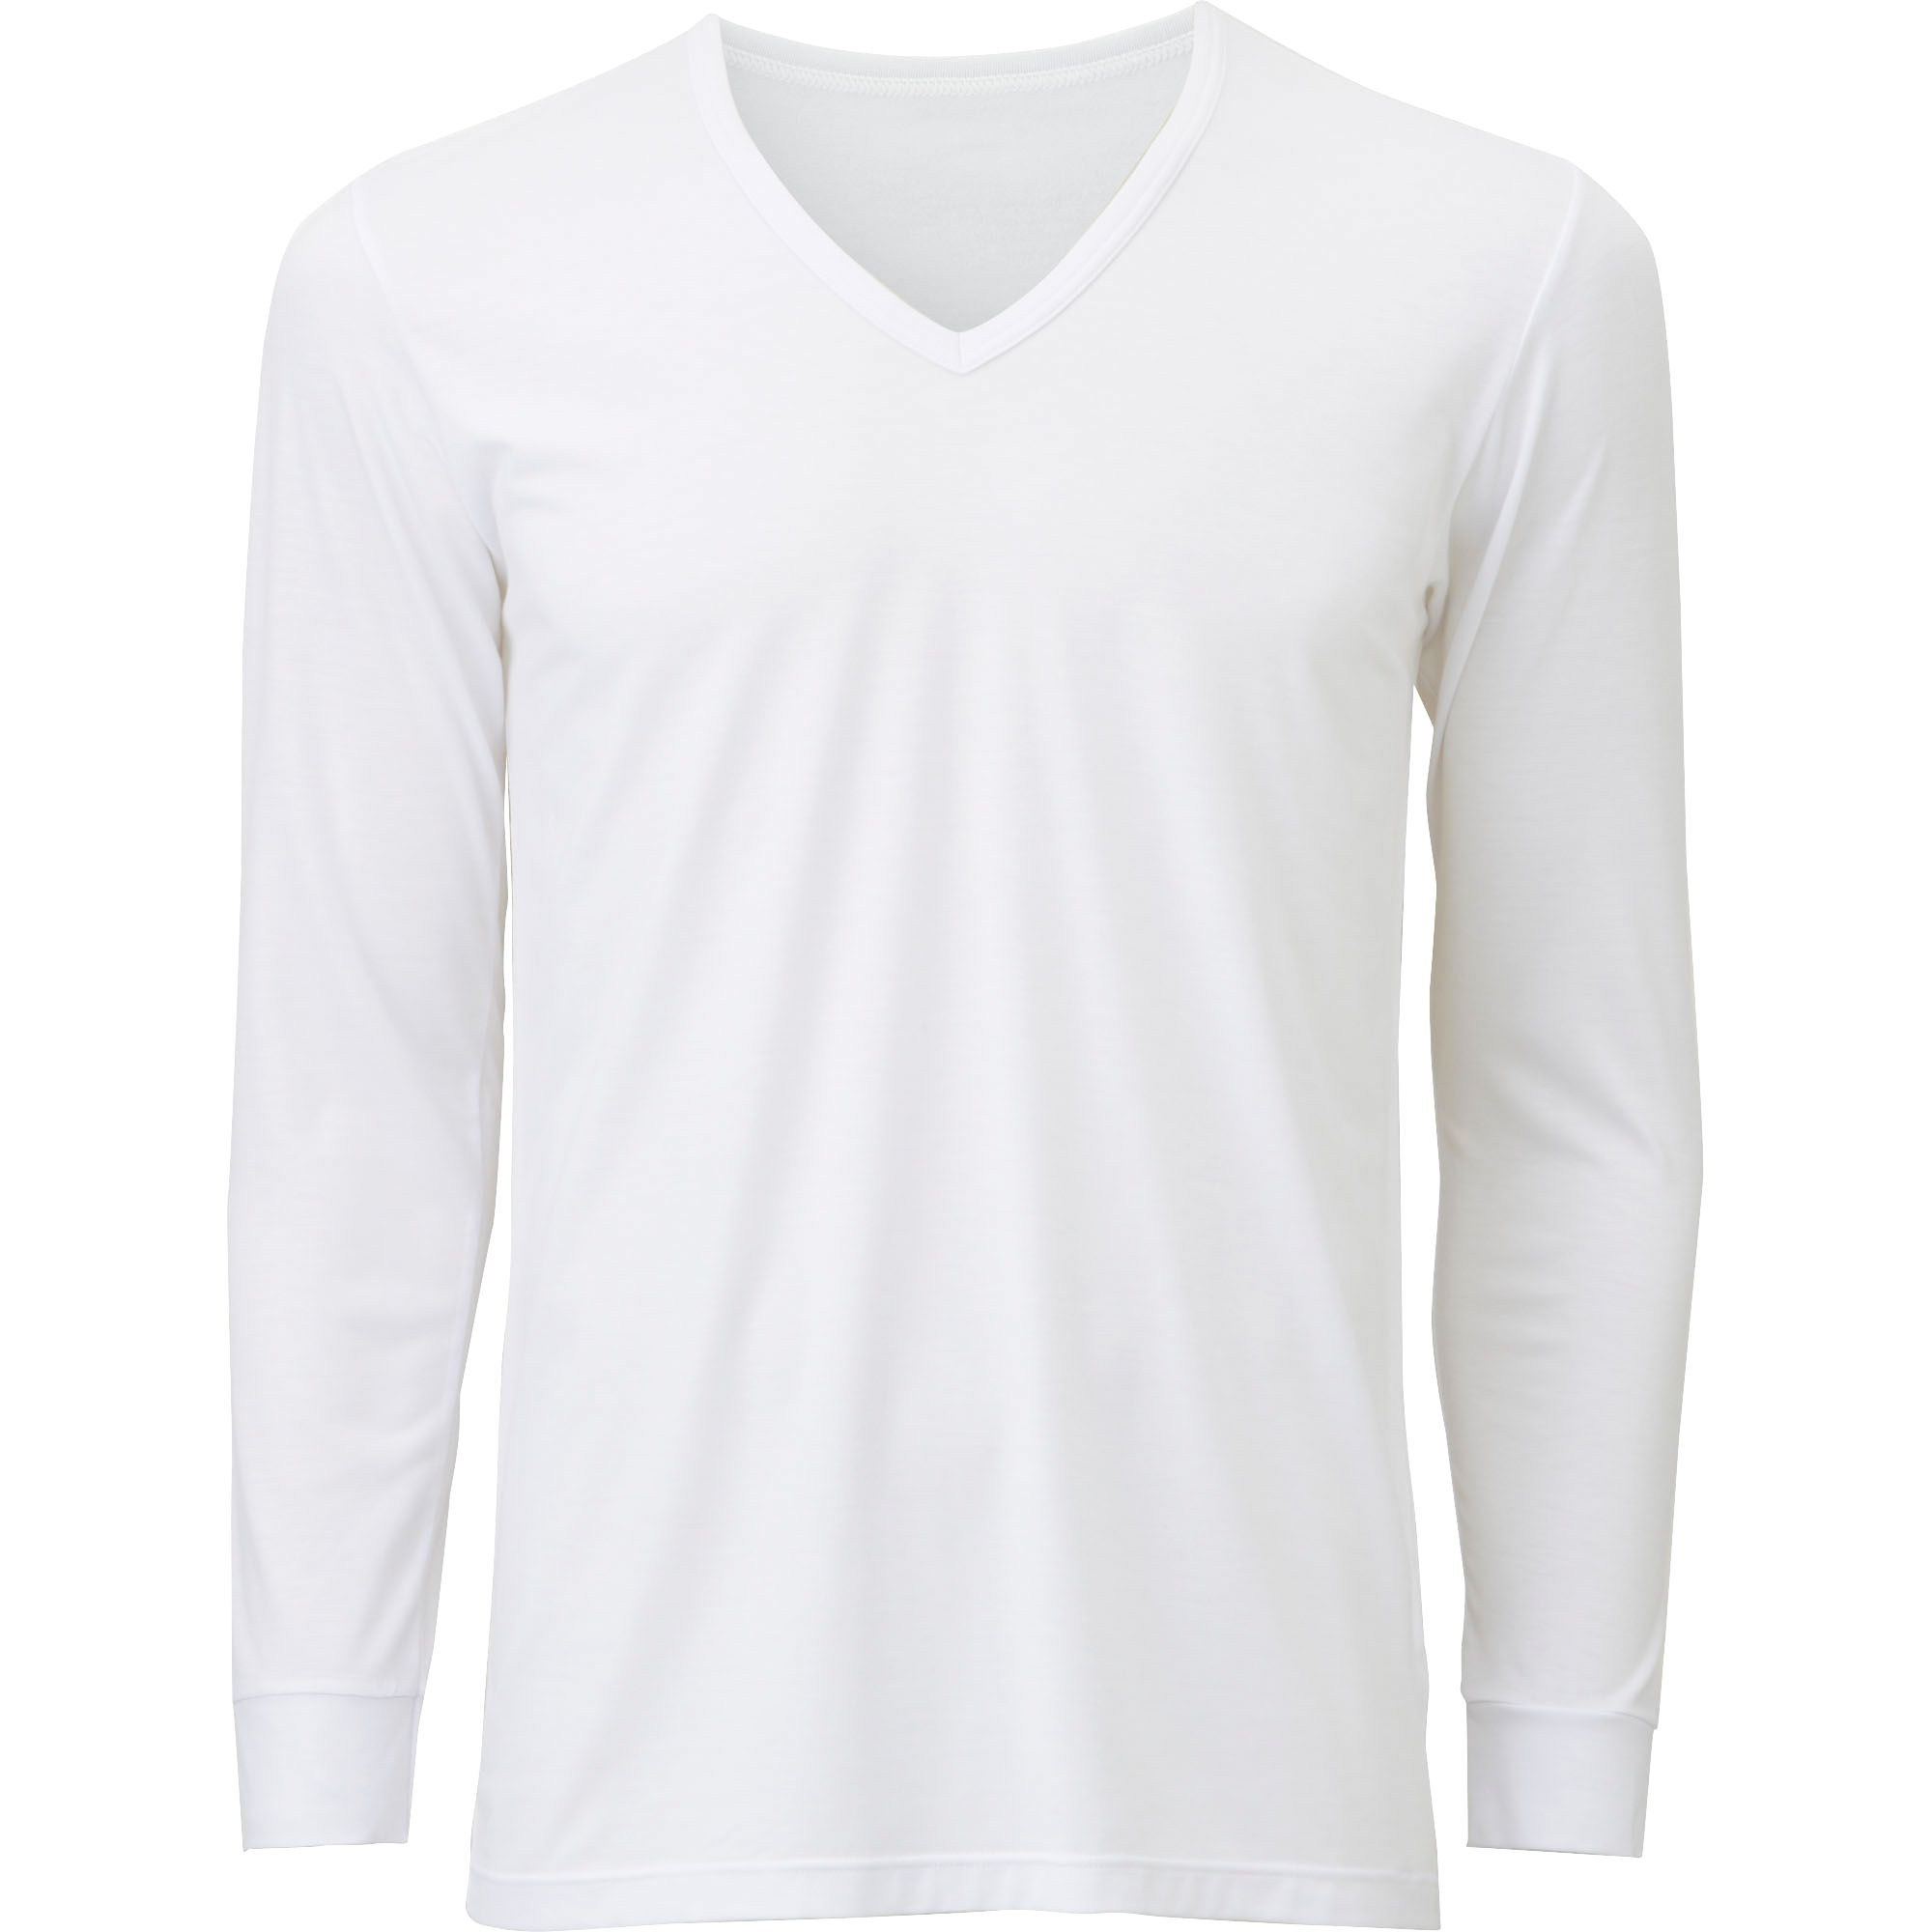 Uniqlo men heattech v neck t shirt long sleeve in white Mens long sleeve white t shirt